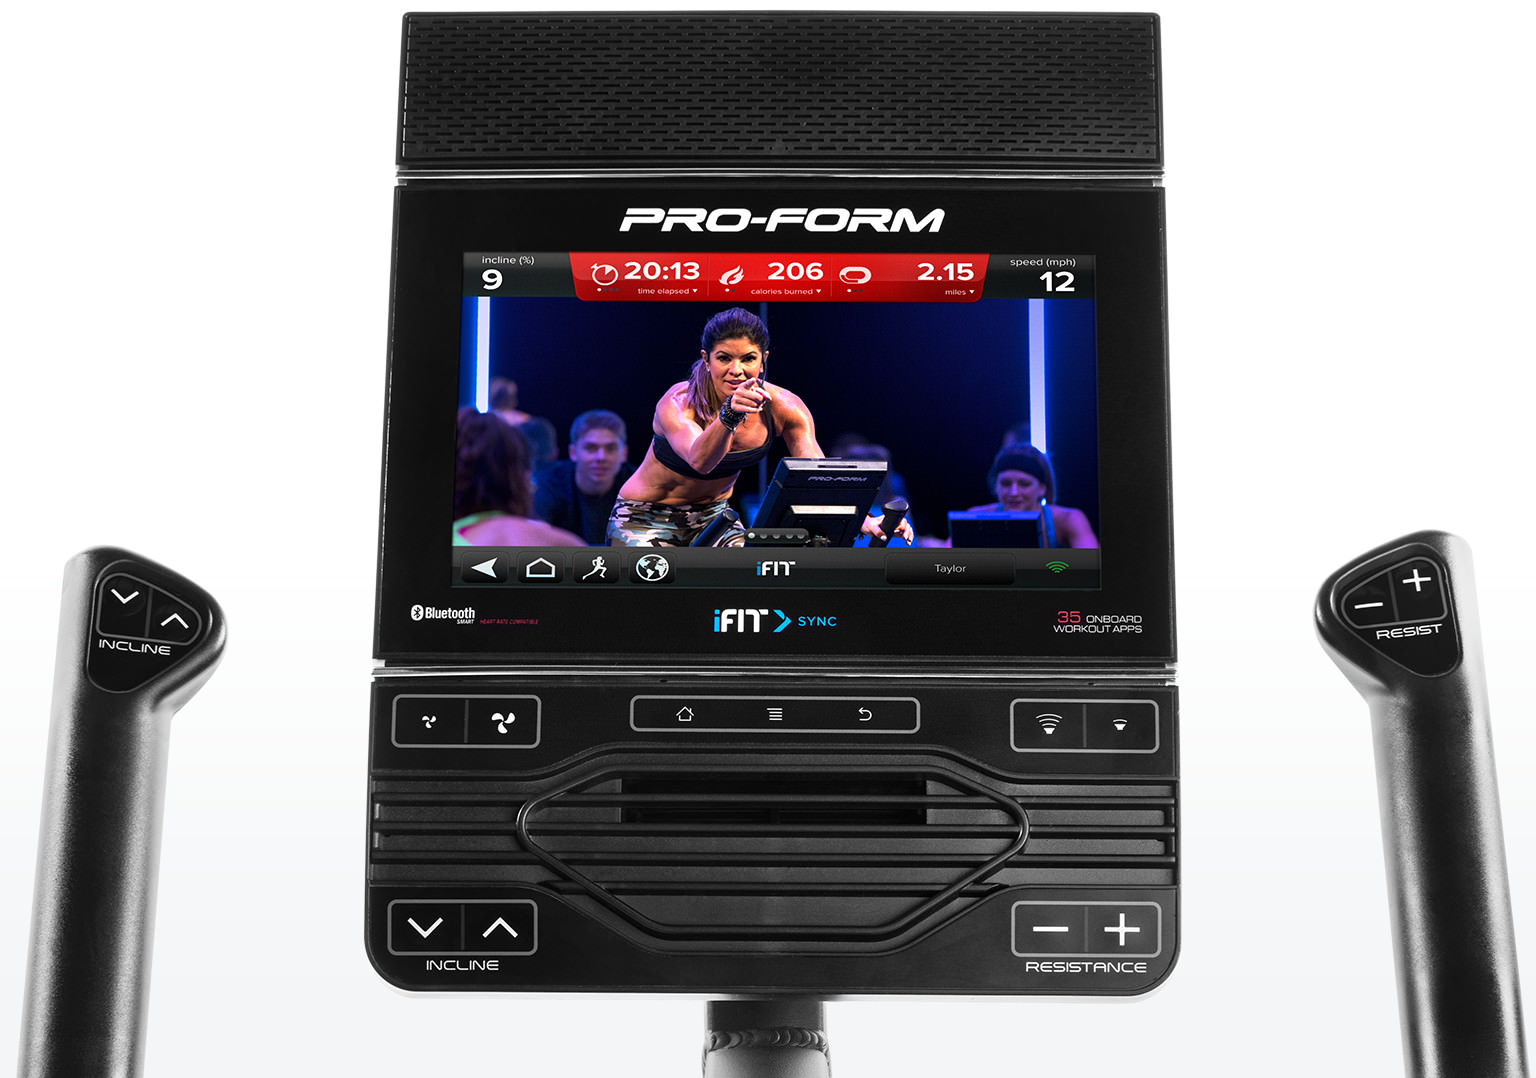 ProForm Studio Bike Pro iFit Coach Console